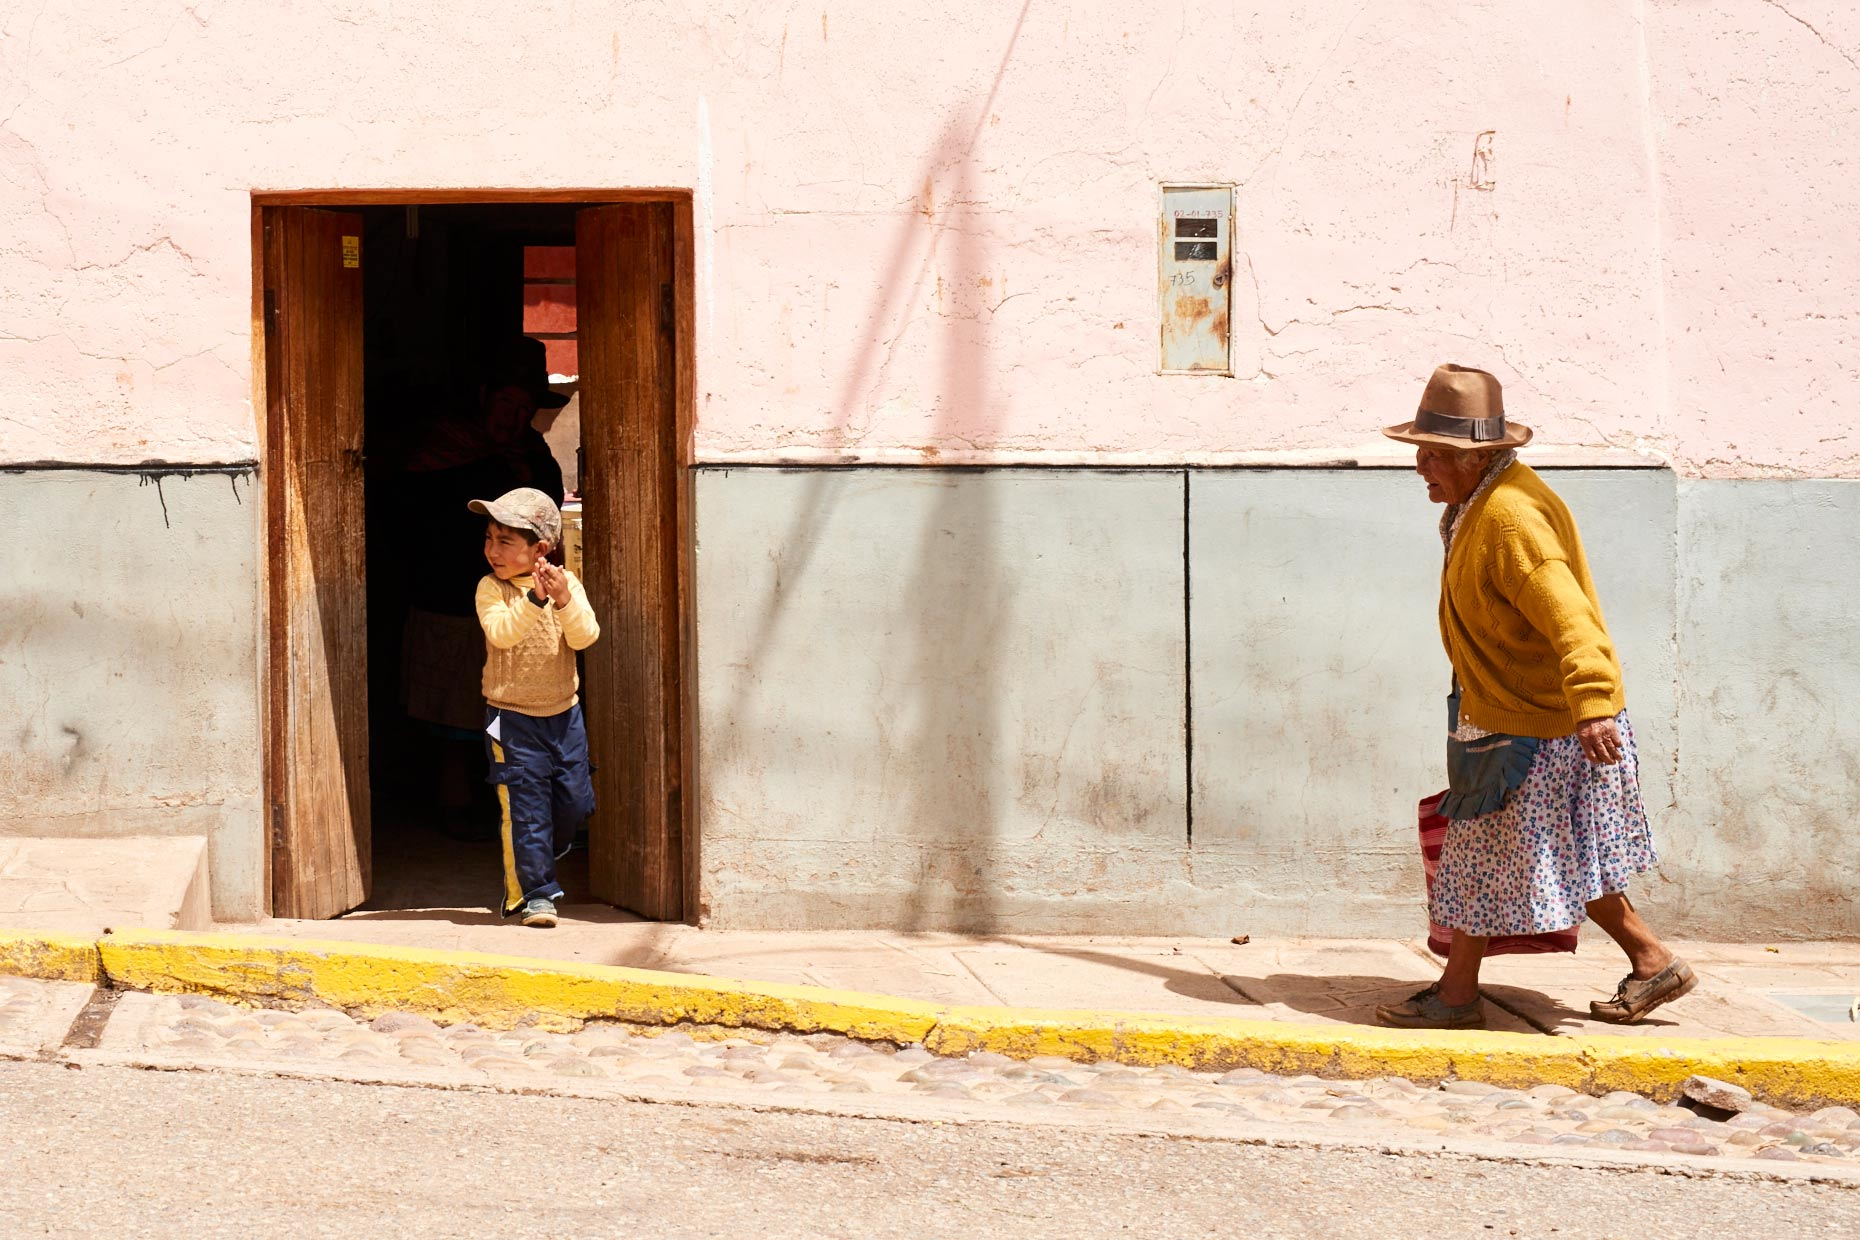 Peruvian-woman-in-tall-hat-walking-on-sidewalk-with-young-boy-in-doorway